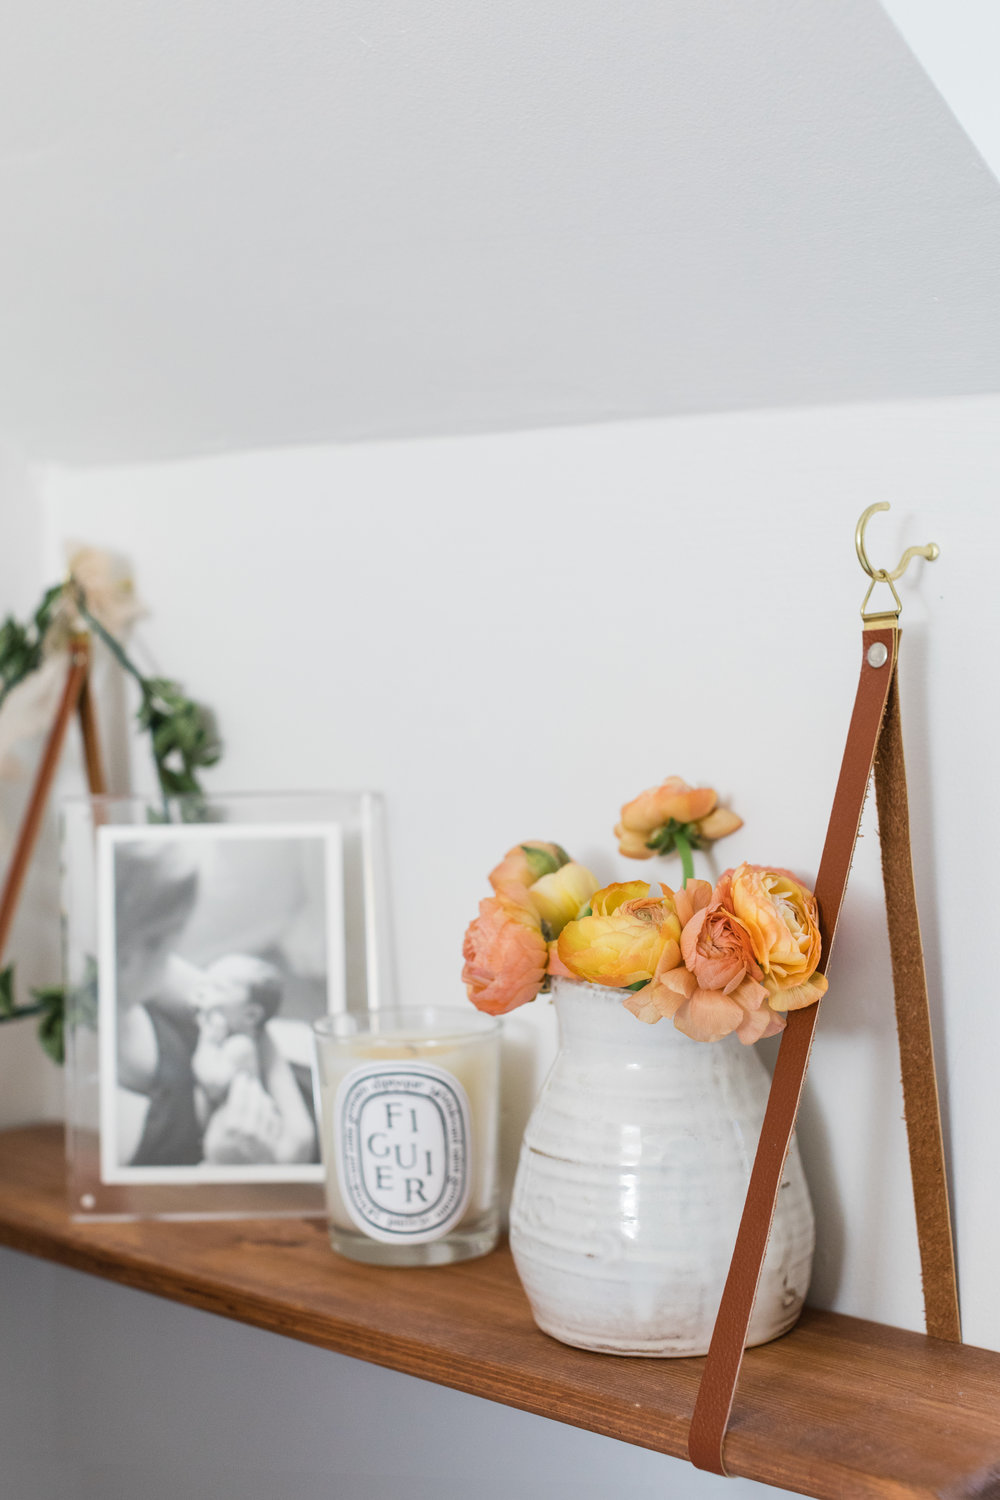 hanging shelf { similar } /  candle